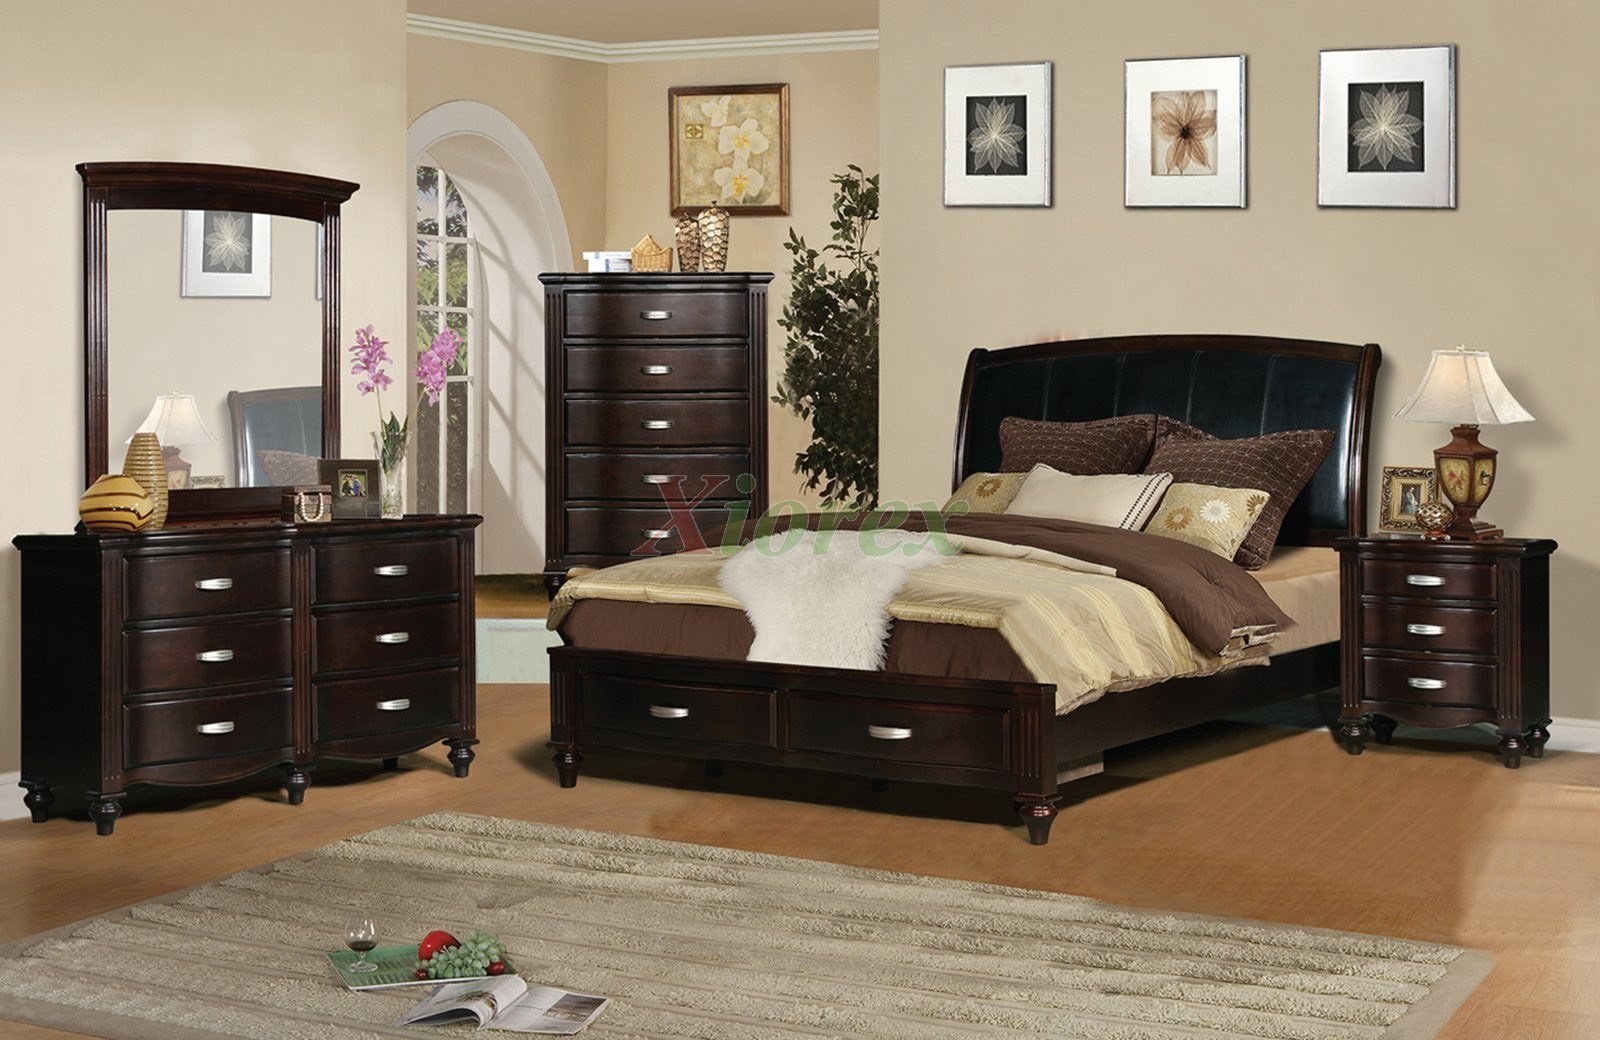 Best Platform Bedroom Furniture Set With Leather Headboard 132 With Pictures